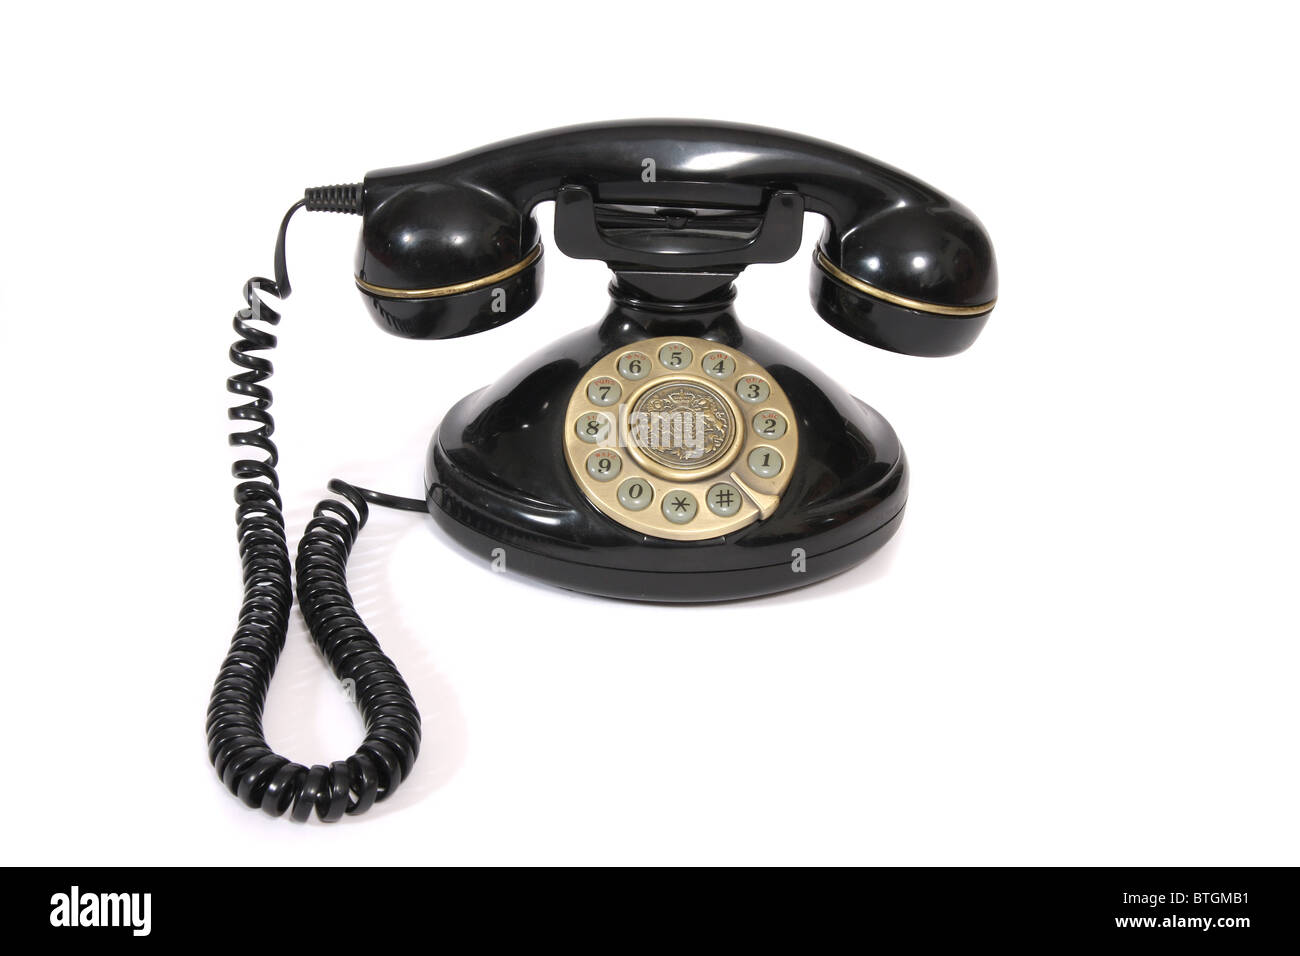 An old fashioned looking telephone. - Stock Image